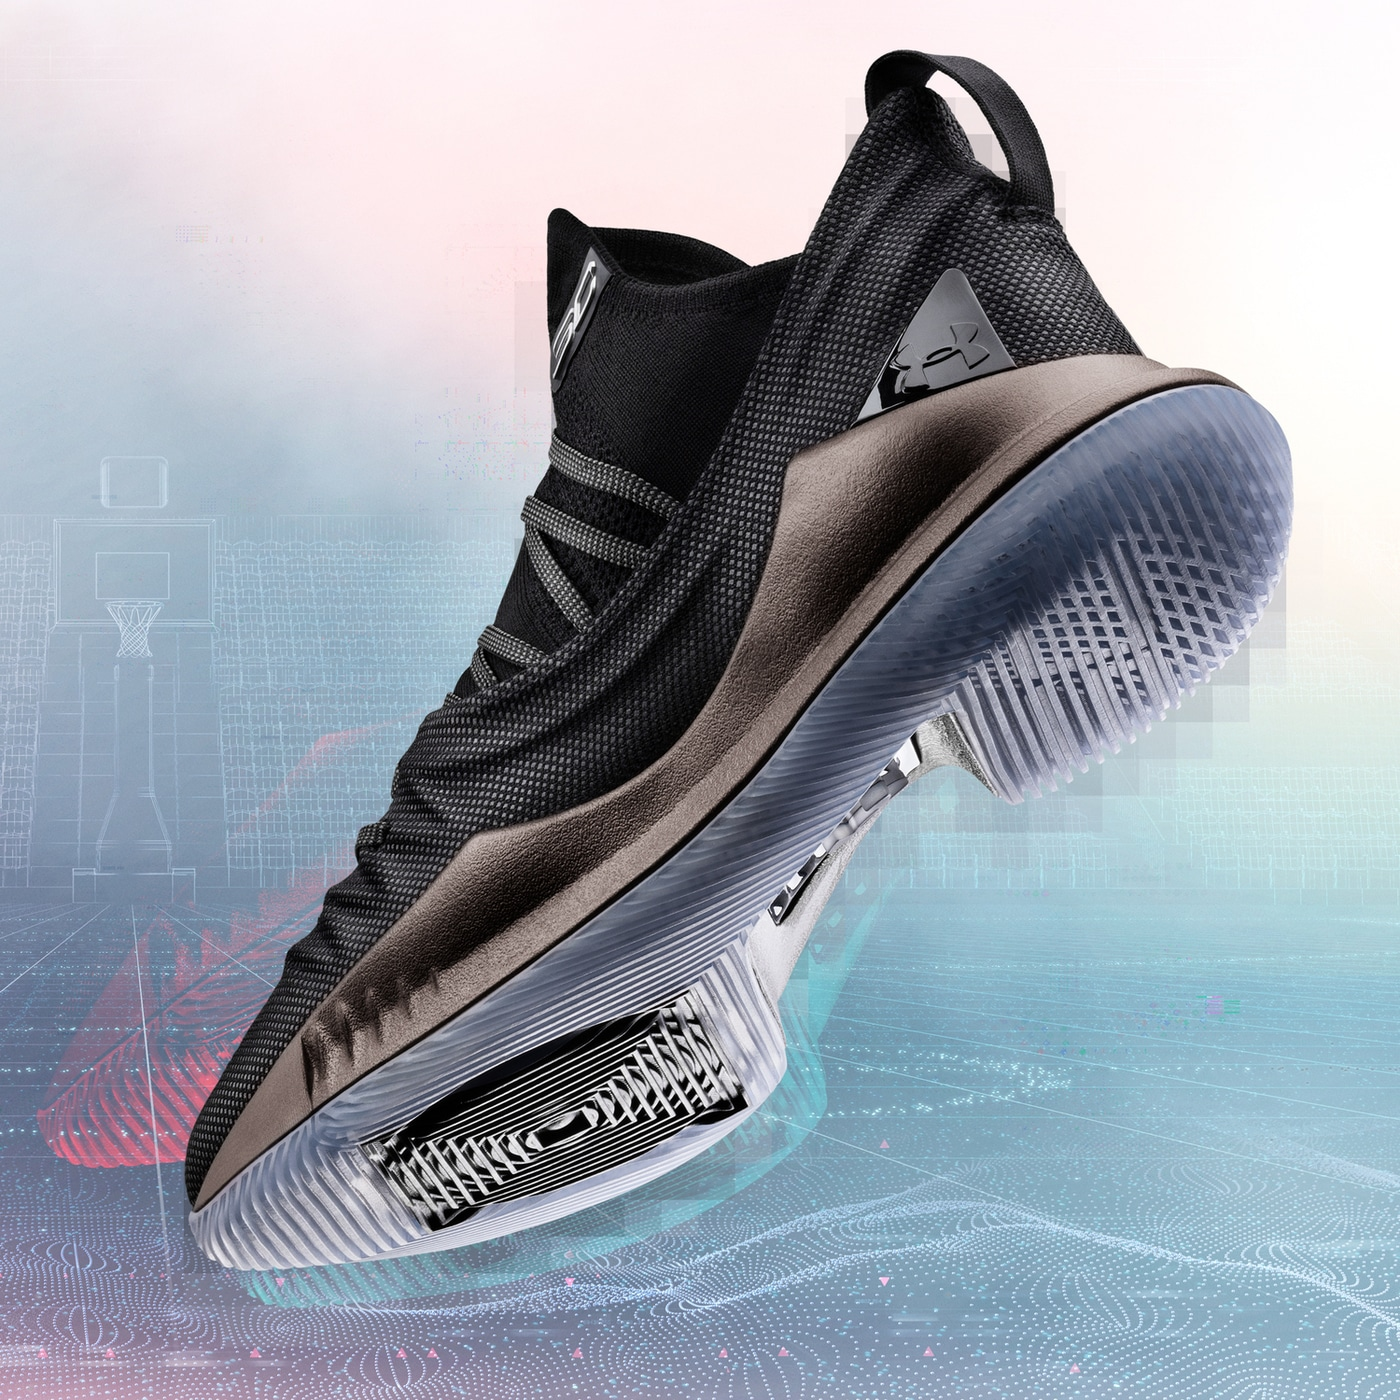 b137fc30f8c5 under armour curry 5 pi day 6 - WearTesters